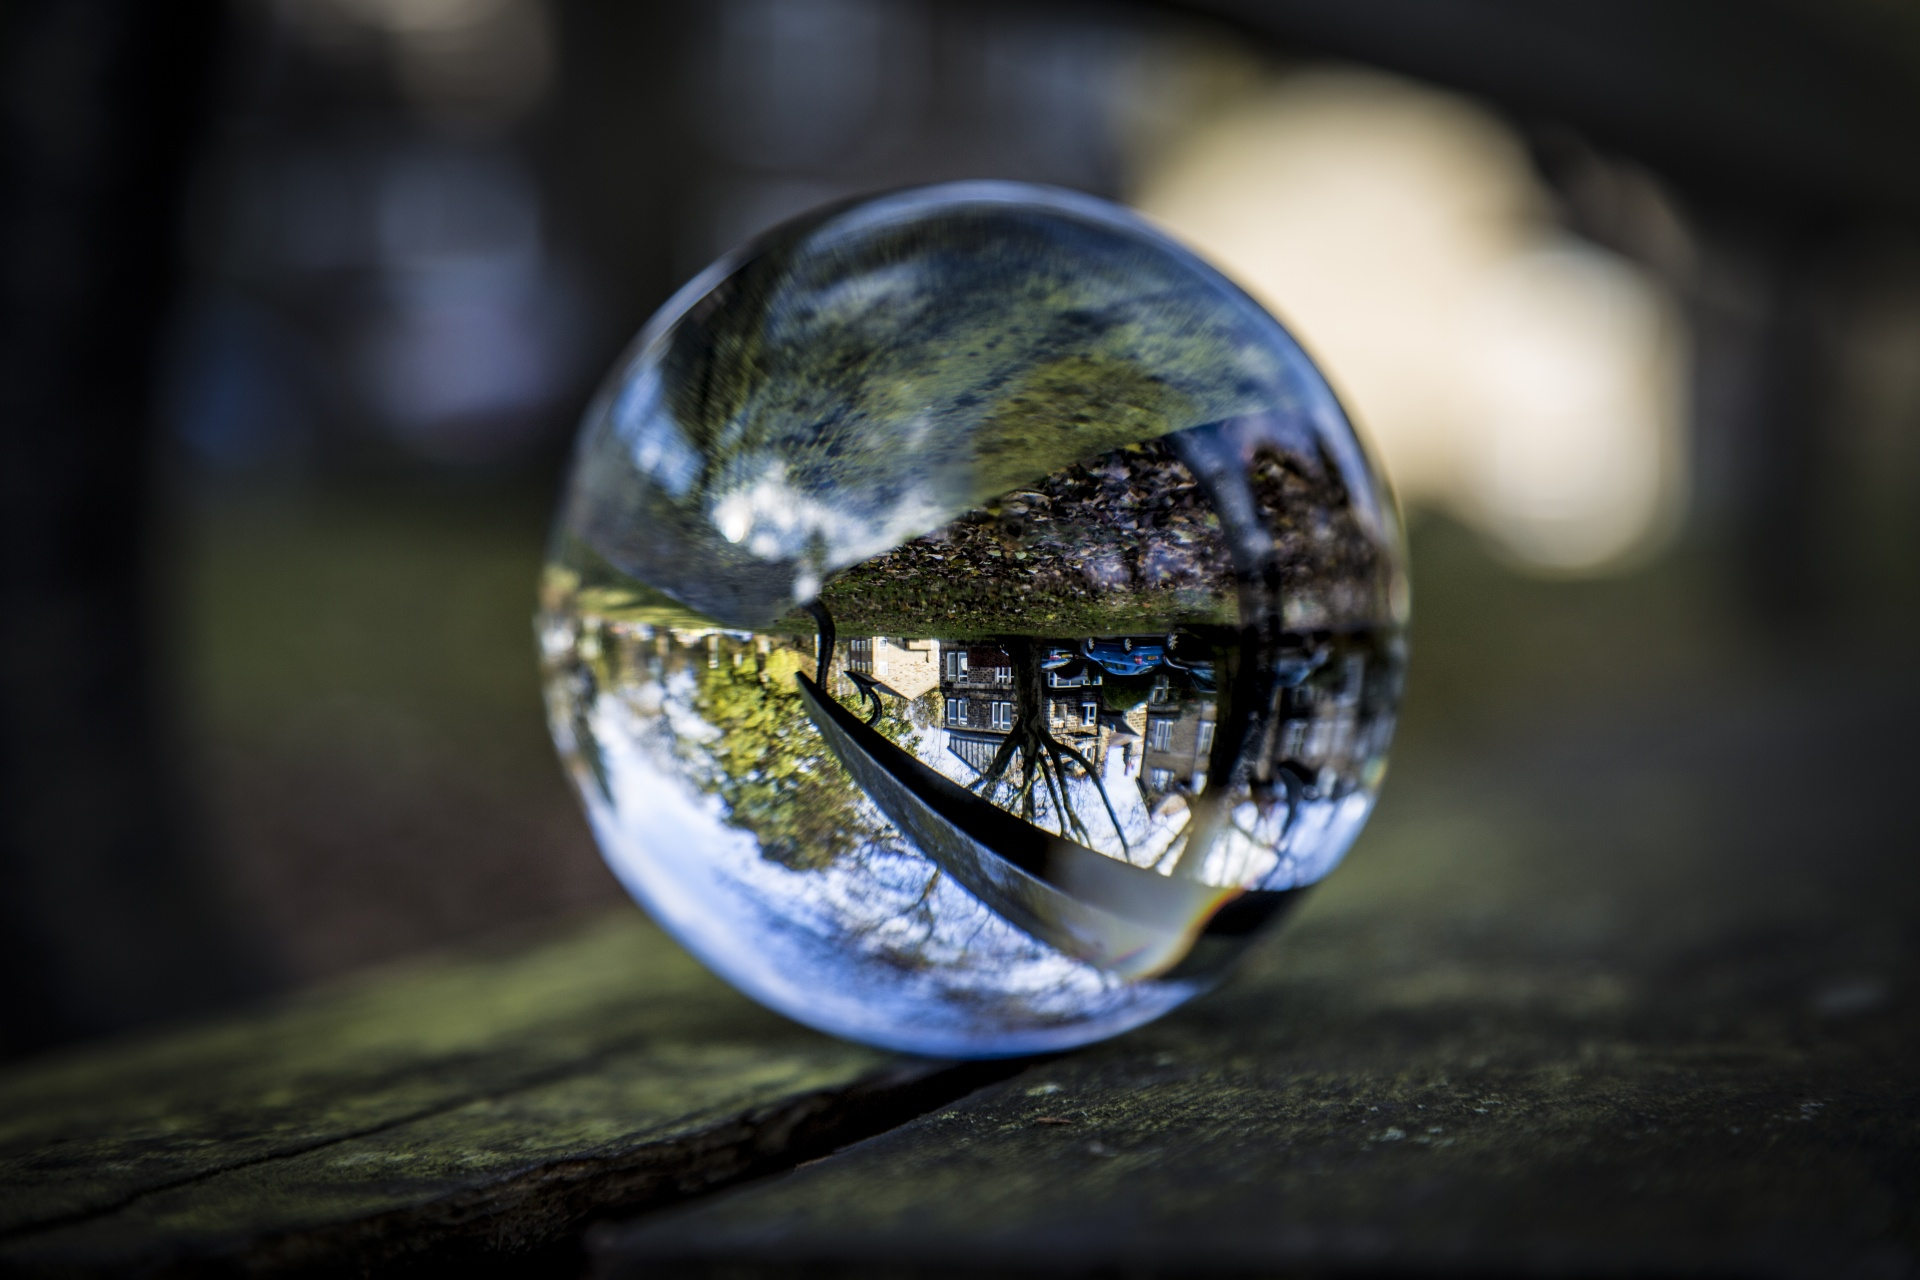 Crystal ball reflection 2018 travel trends cultural immersion remote travel luxpedition the great game the grand tour 2.0